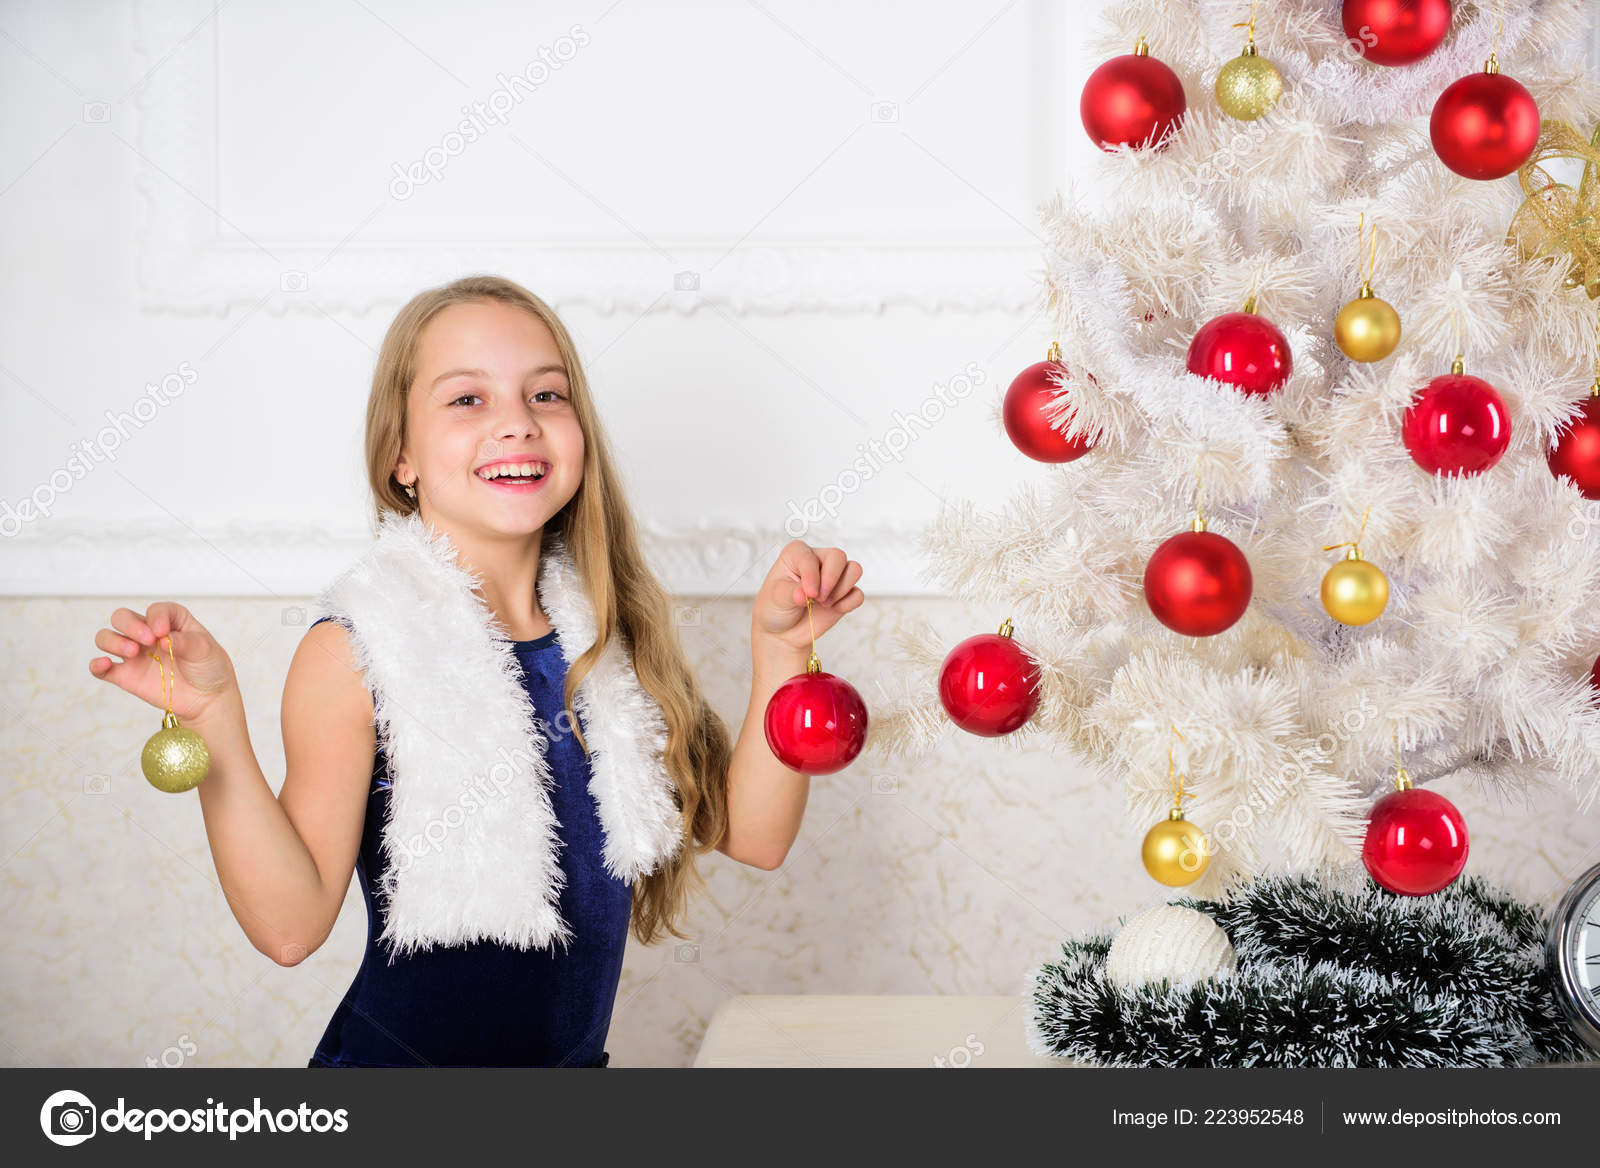 Forum on this topic: How to Feel Happy when Christmas Is , how-to-feel-happy-when-christmas-is/